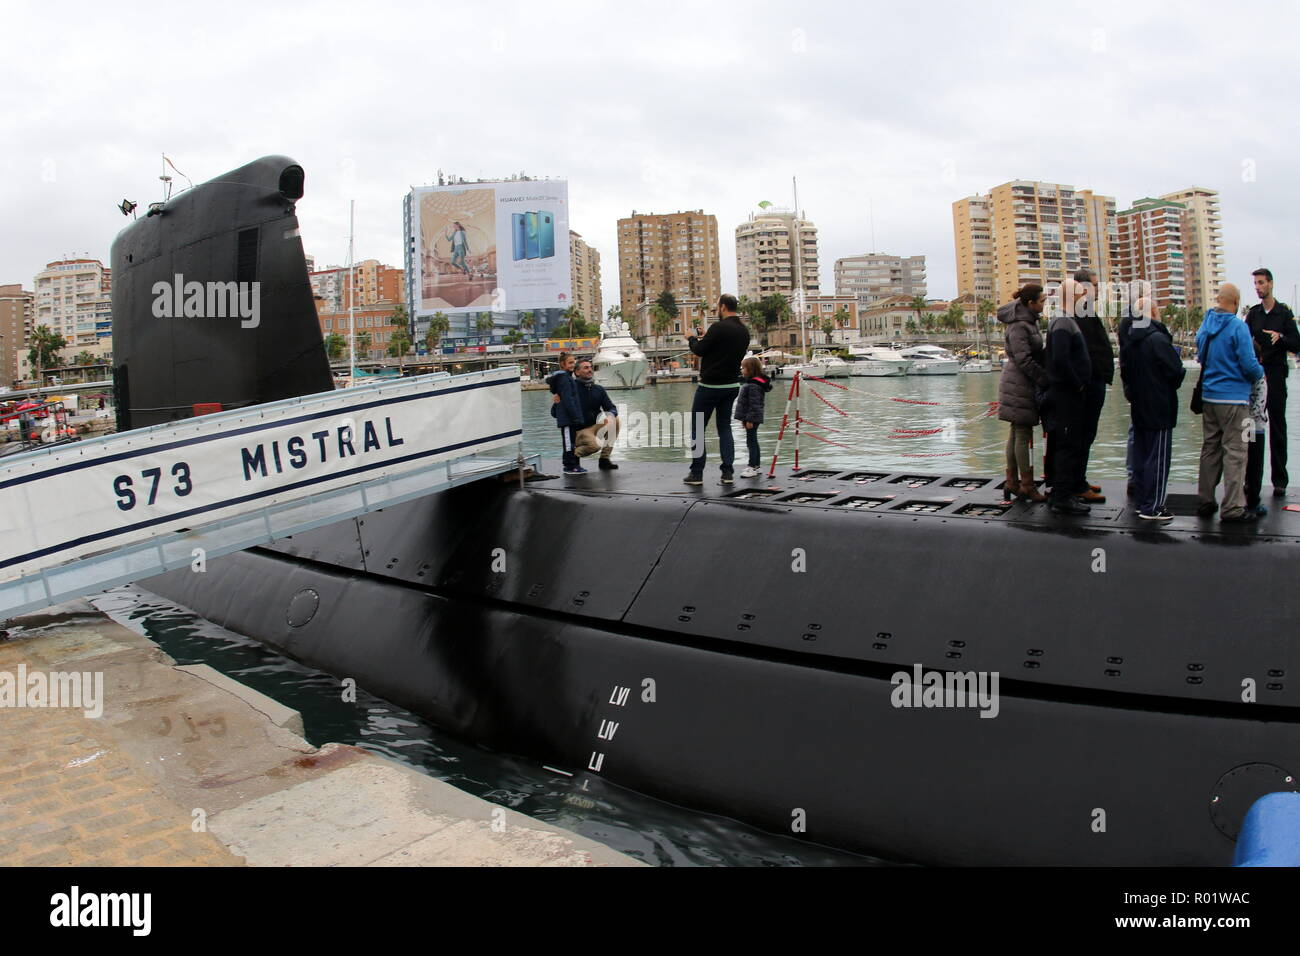 October 31, 2018 - 31 october 2018 (Malaga ) The Mistral submarine has stopped at the Port of Malaga from today until November 2. The Mistral submarine is the third of the Galerna class. During the first semester of this year he has participated in the Operation 'Sea Guardian', dedicated to the control of maritime traffic and detection of illicit activities that may affect the stability of the coastal states of the Atlantic Alliance. Its crew consists of 63 men and women, and after its stopover in the Port of Malaga it will continue with various maneuvers and training exercises. (Credit Image: - Stock Image